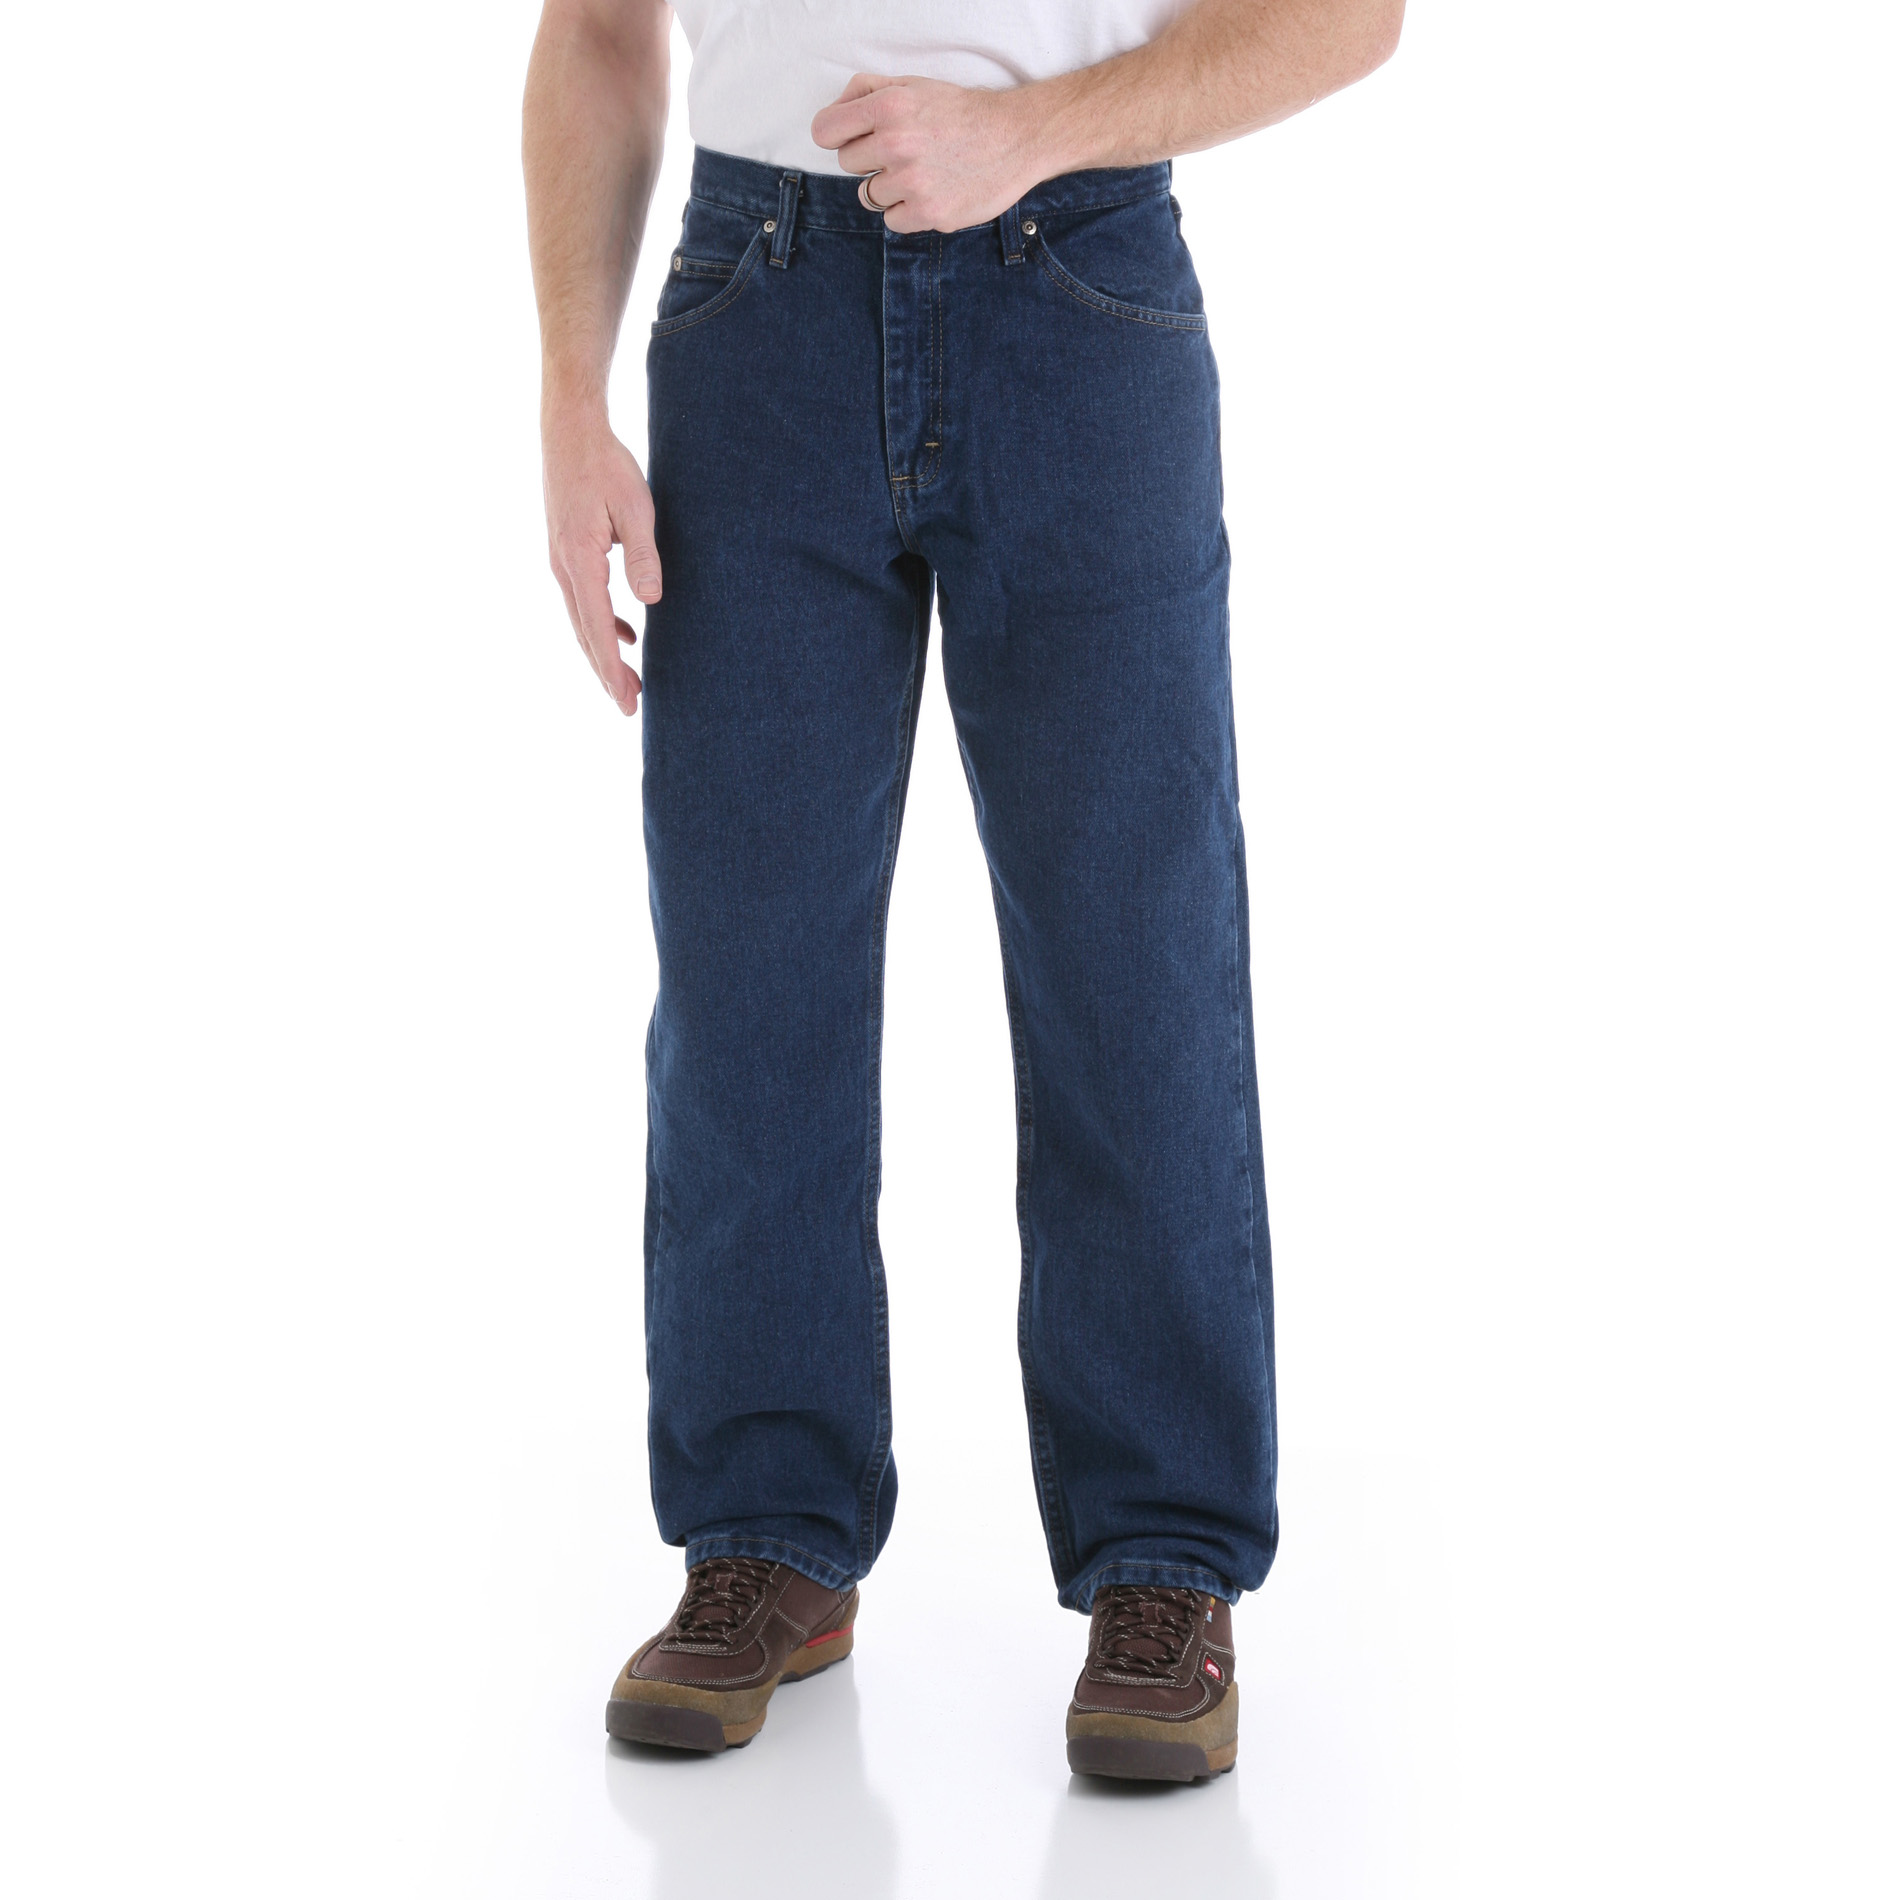 Wrangler Men's Big & Tall Relaxed Fit Dark Rinse Jean at Kmart.com